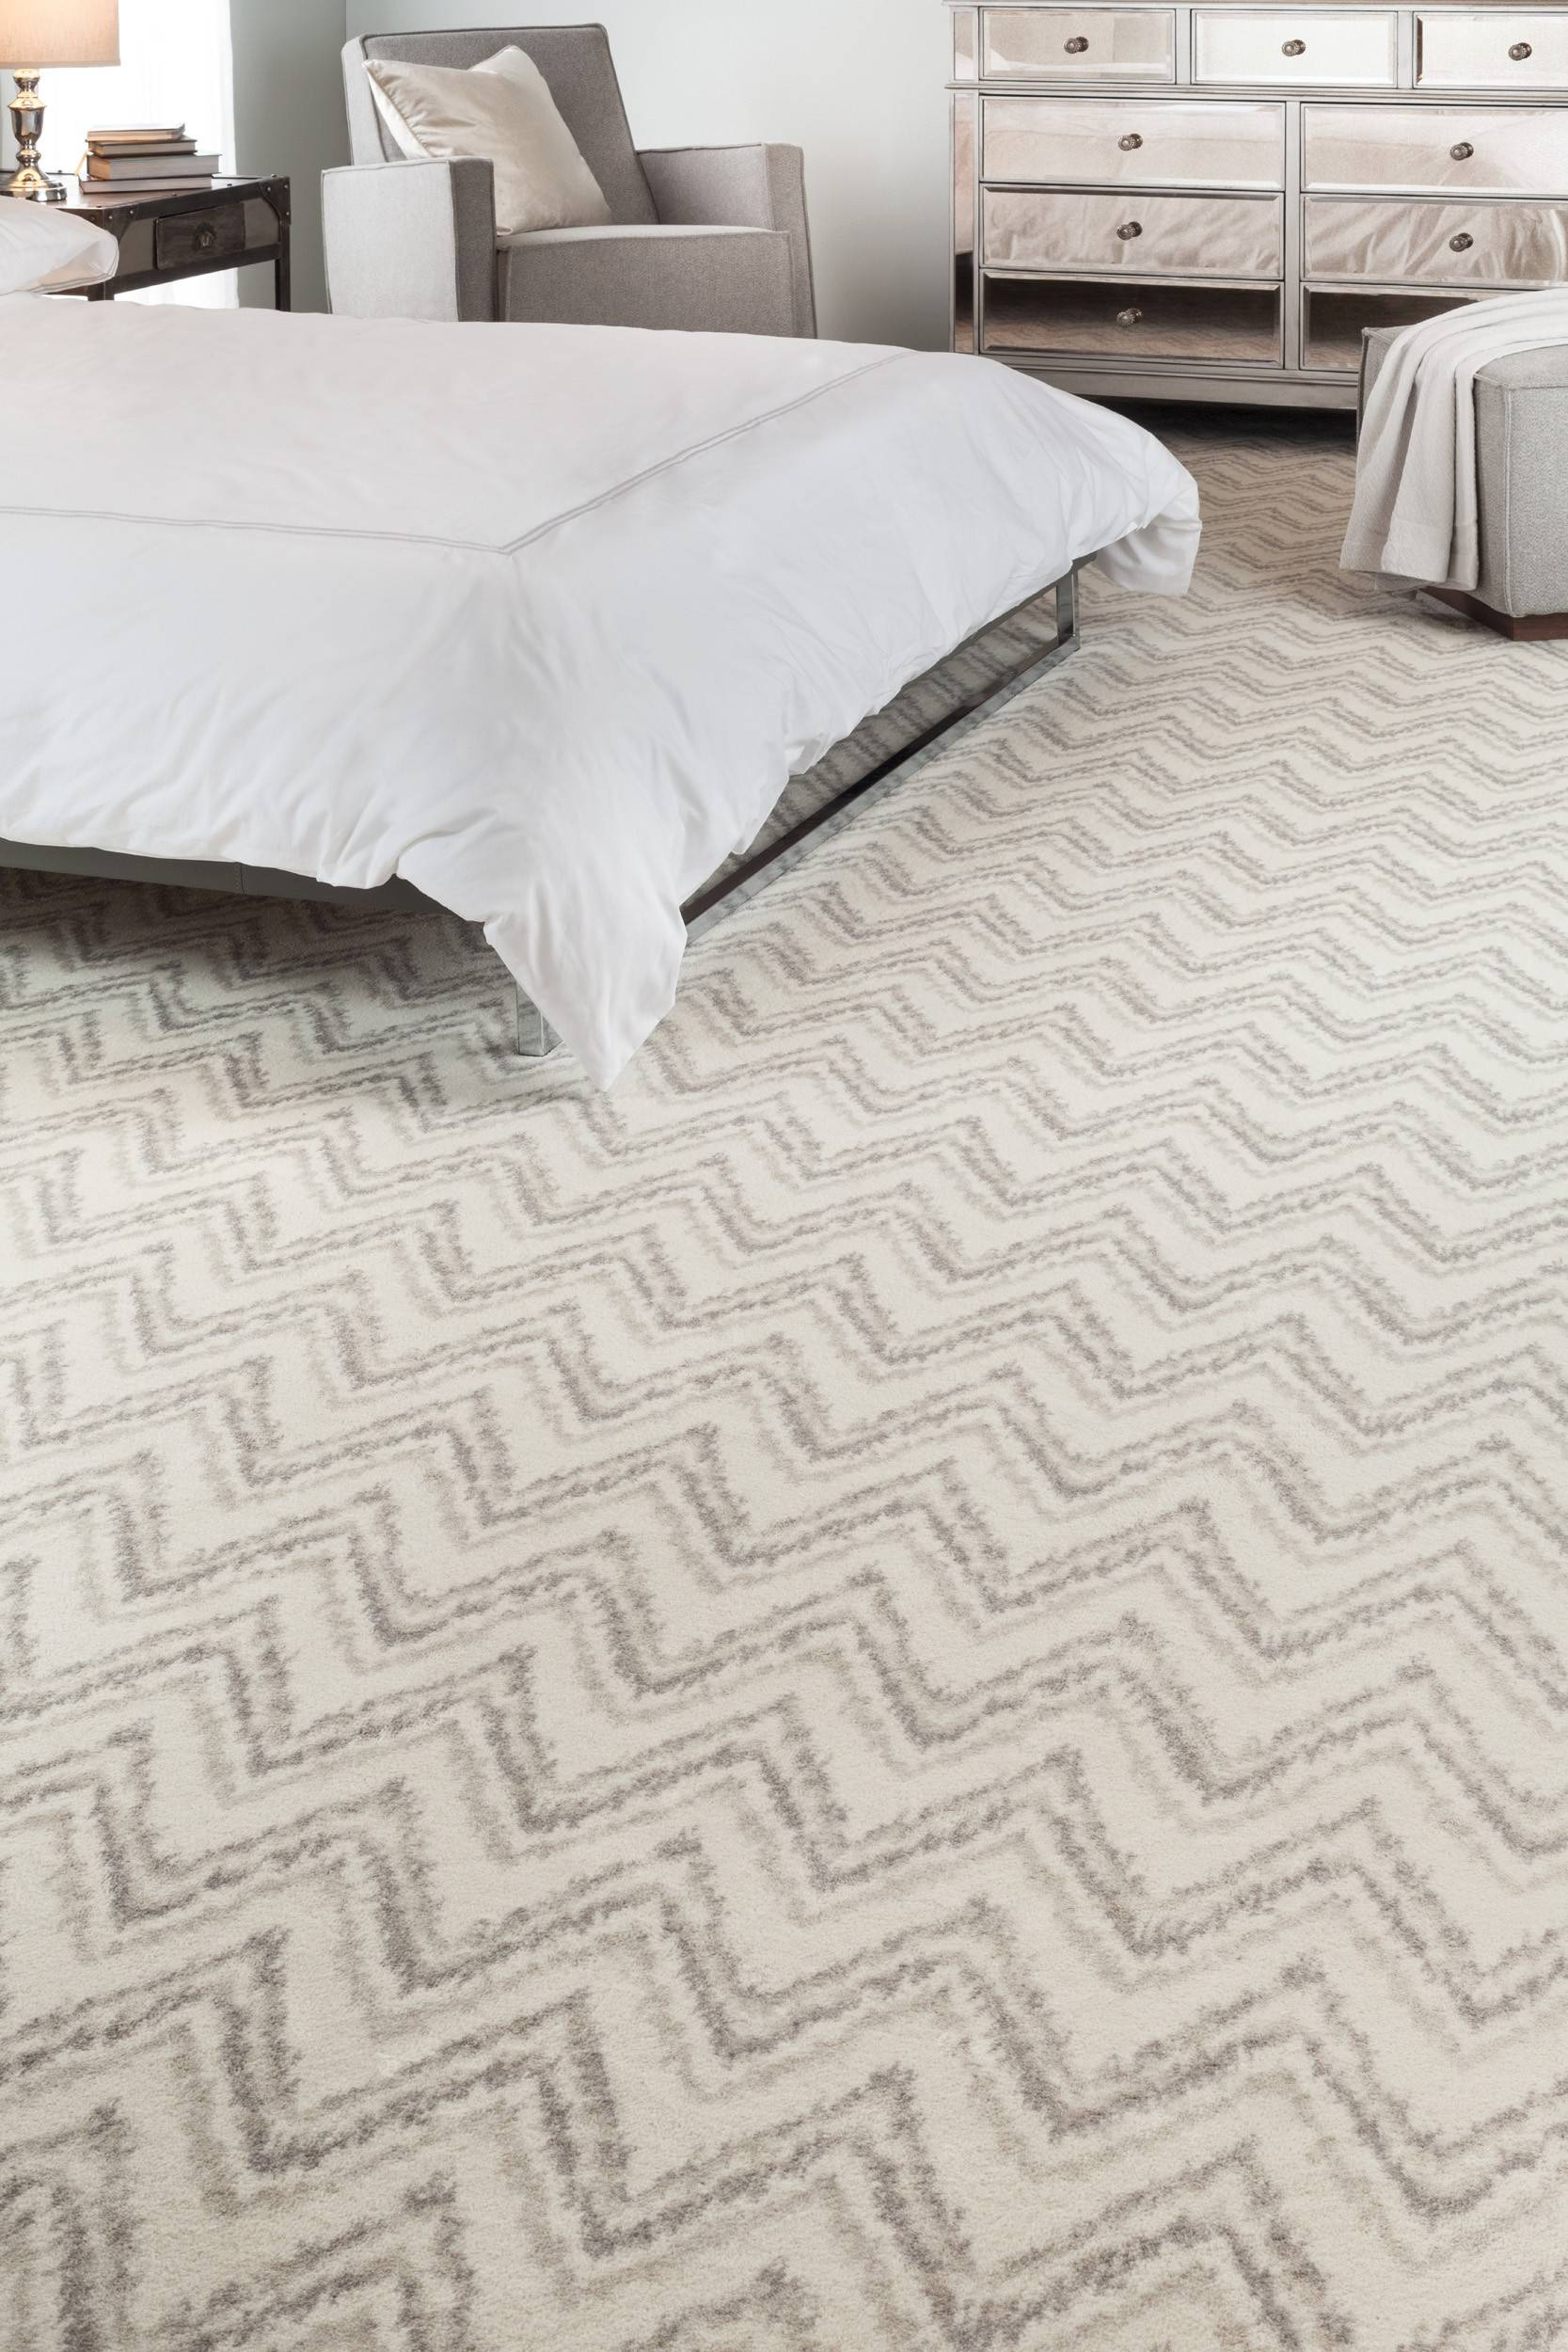 Milliken's Vibrato is a printed carpet with a zig-zag pattern.